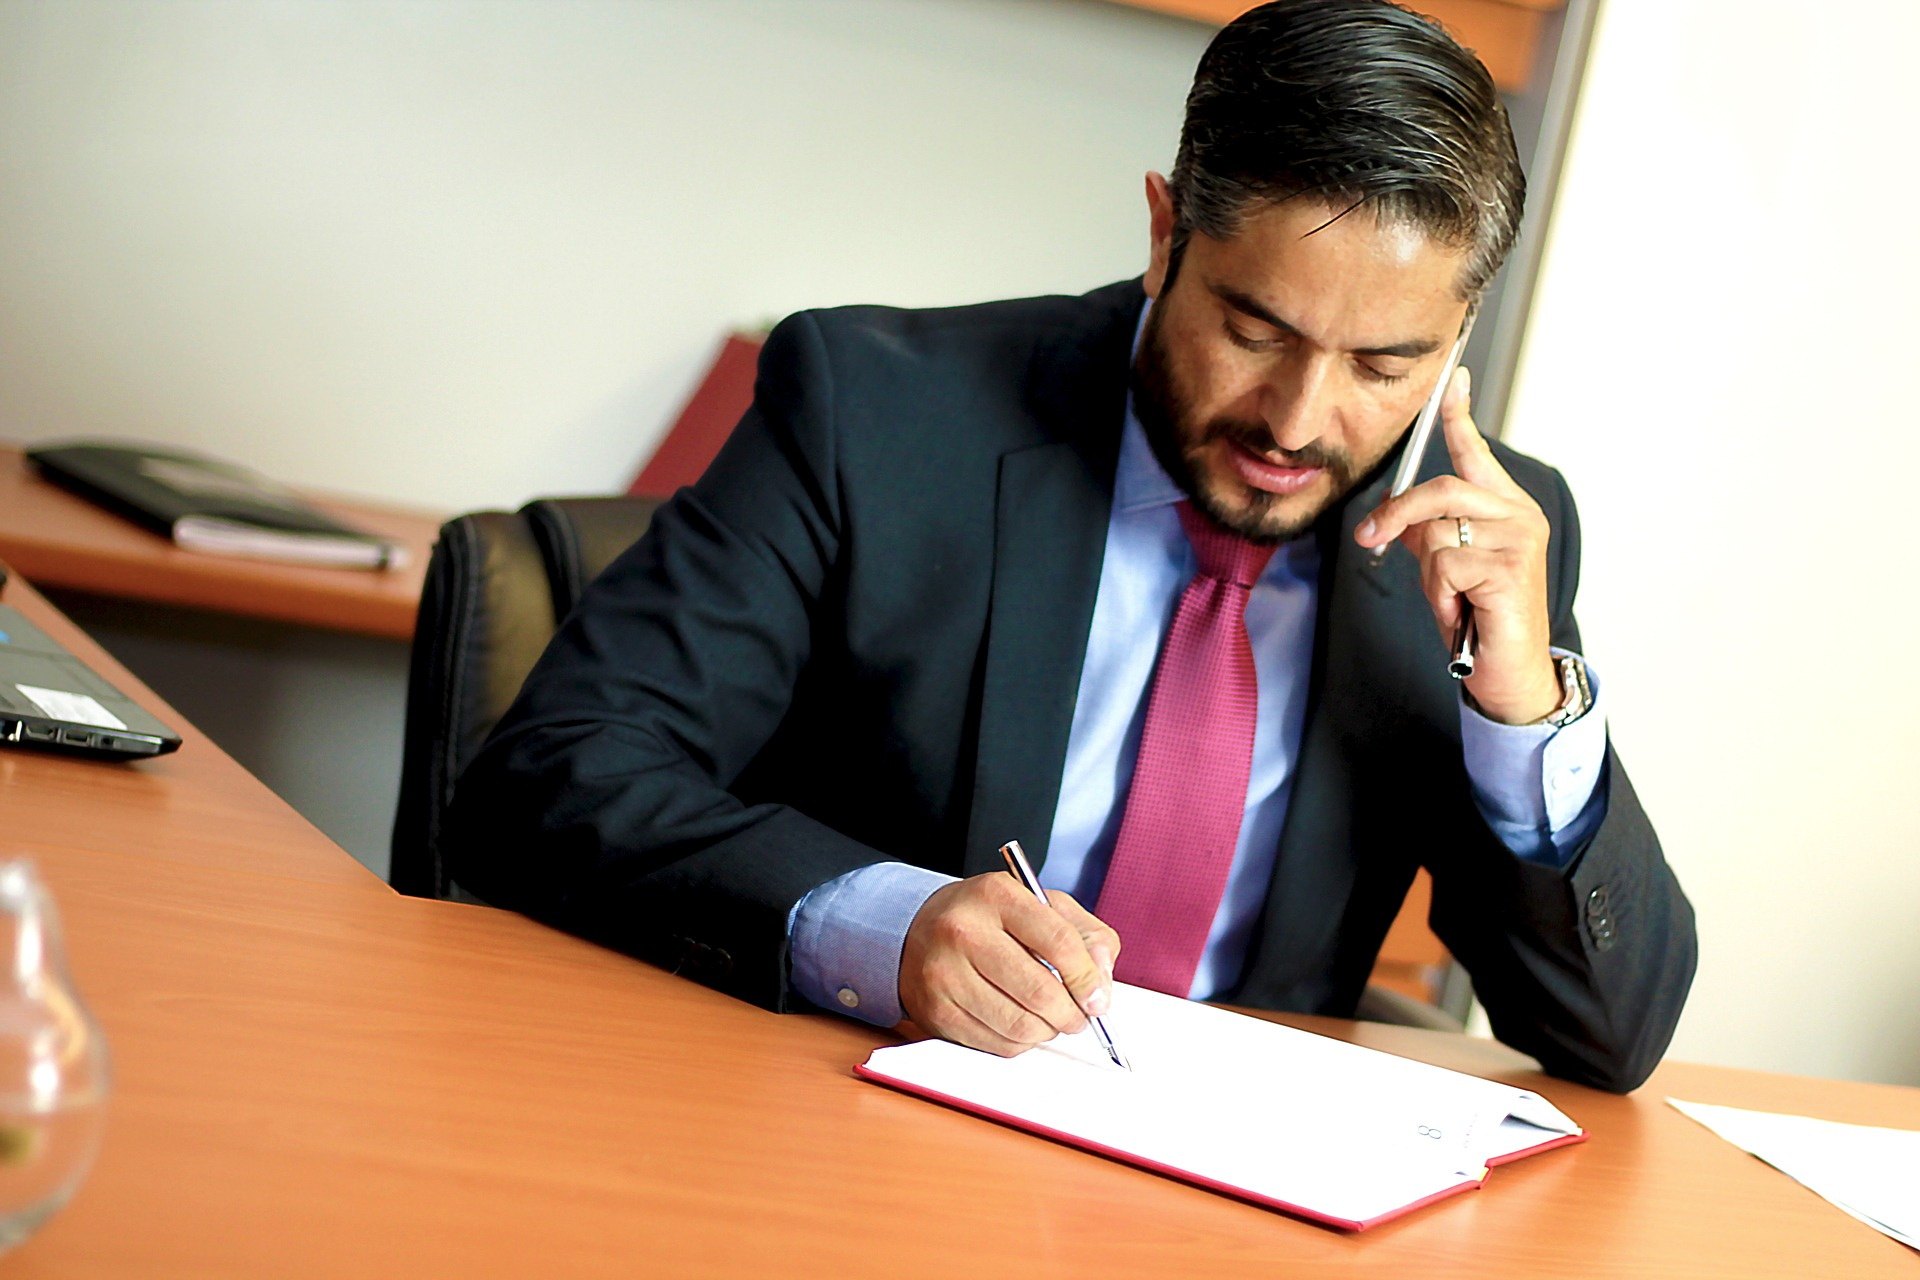 Conduct Lawyer